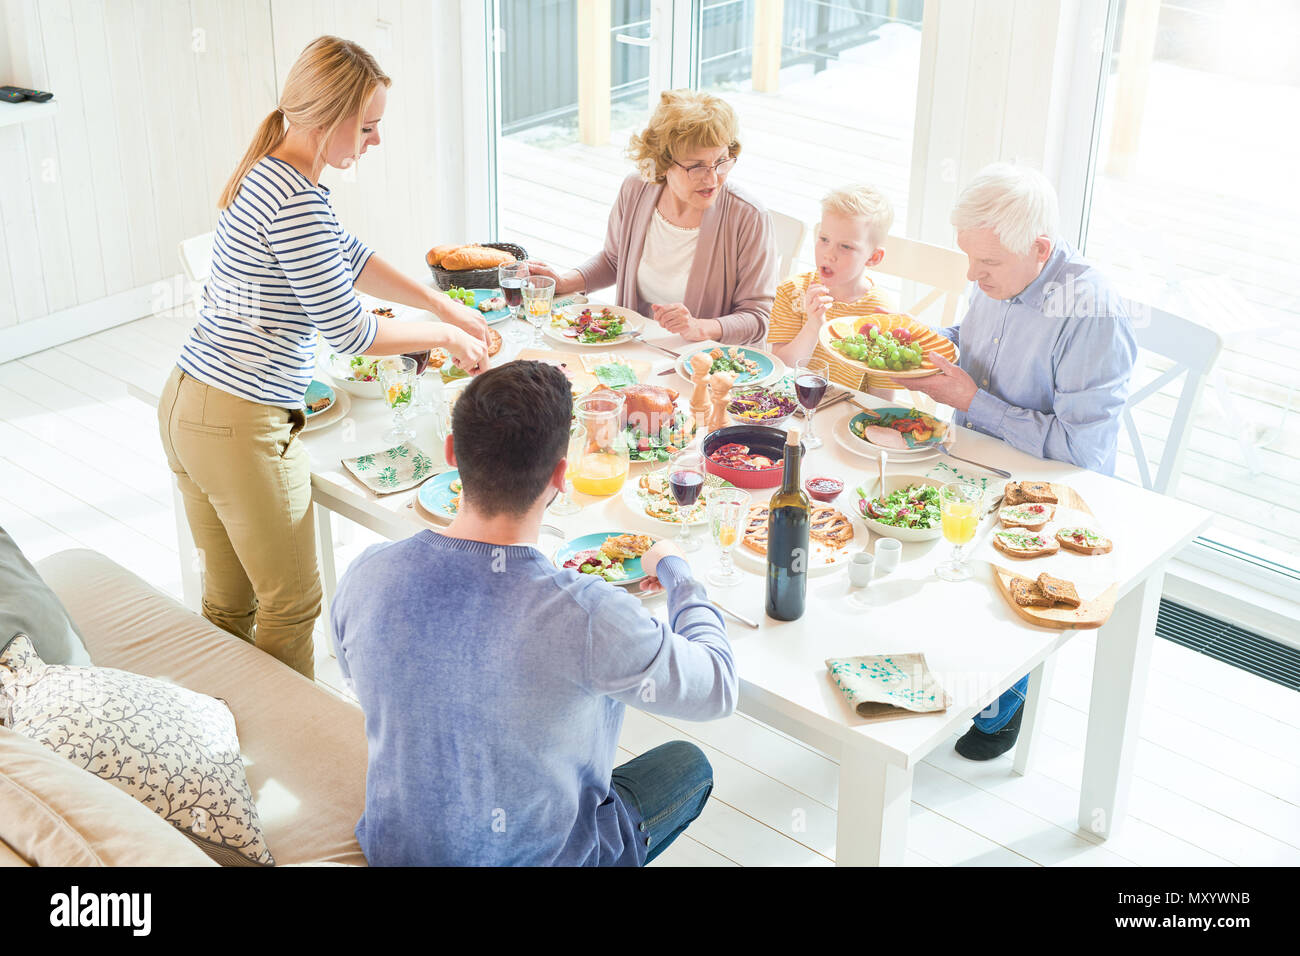 Portrait of happy two generation  family enjoying dinner together sitting at festive table with delicious dishes during  holiday  celebration in sunli - Stock Image